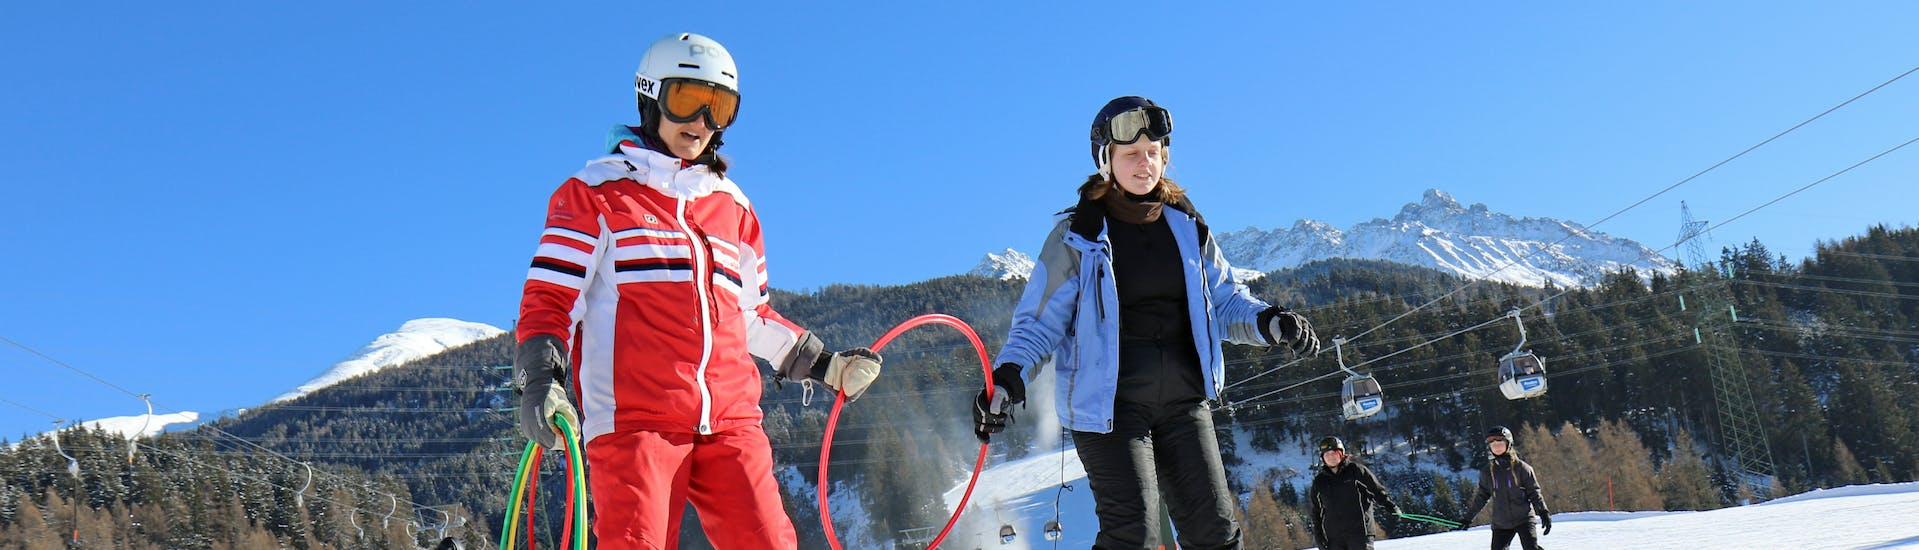 Private Ski Lessons for Adults in Belpiano/Haideralm with Skischule Pfunds - Hero image